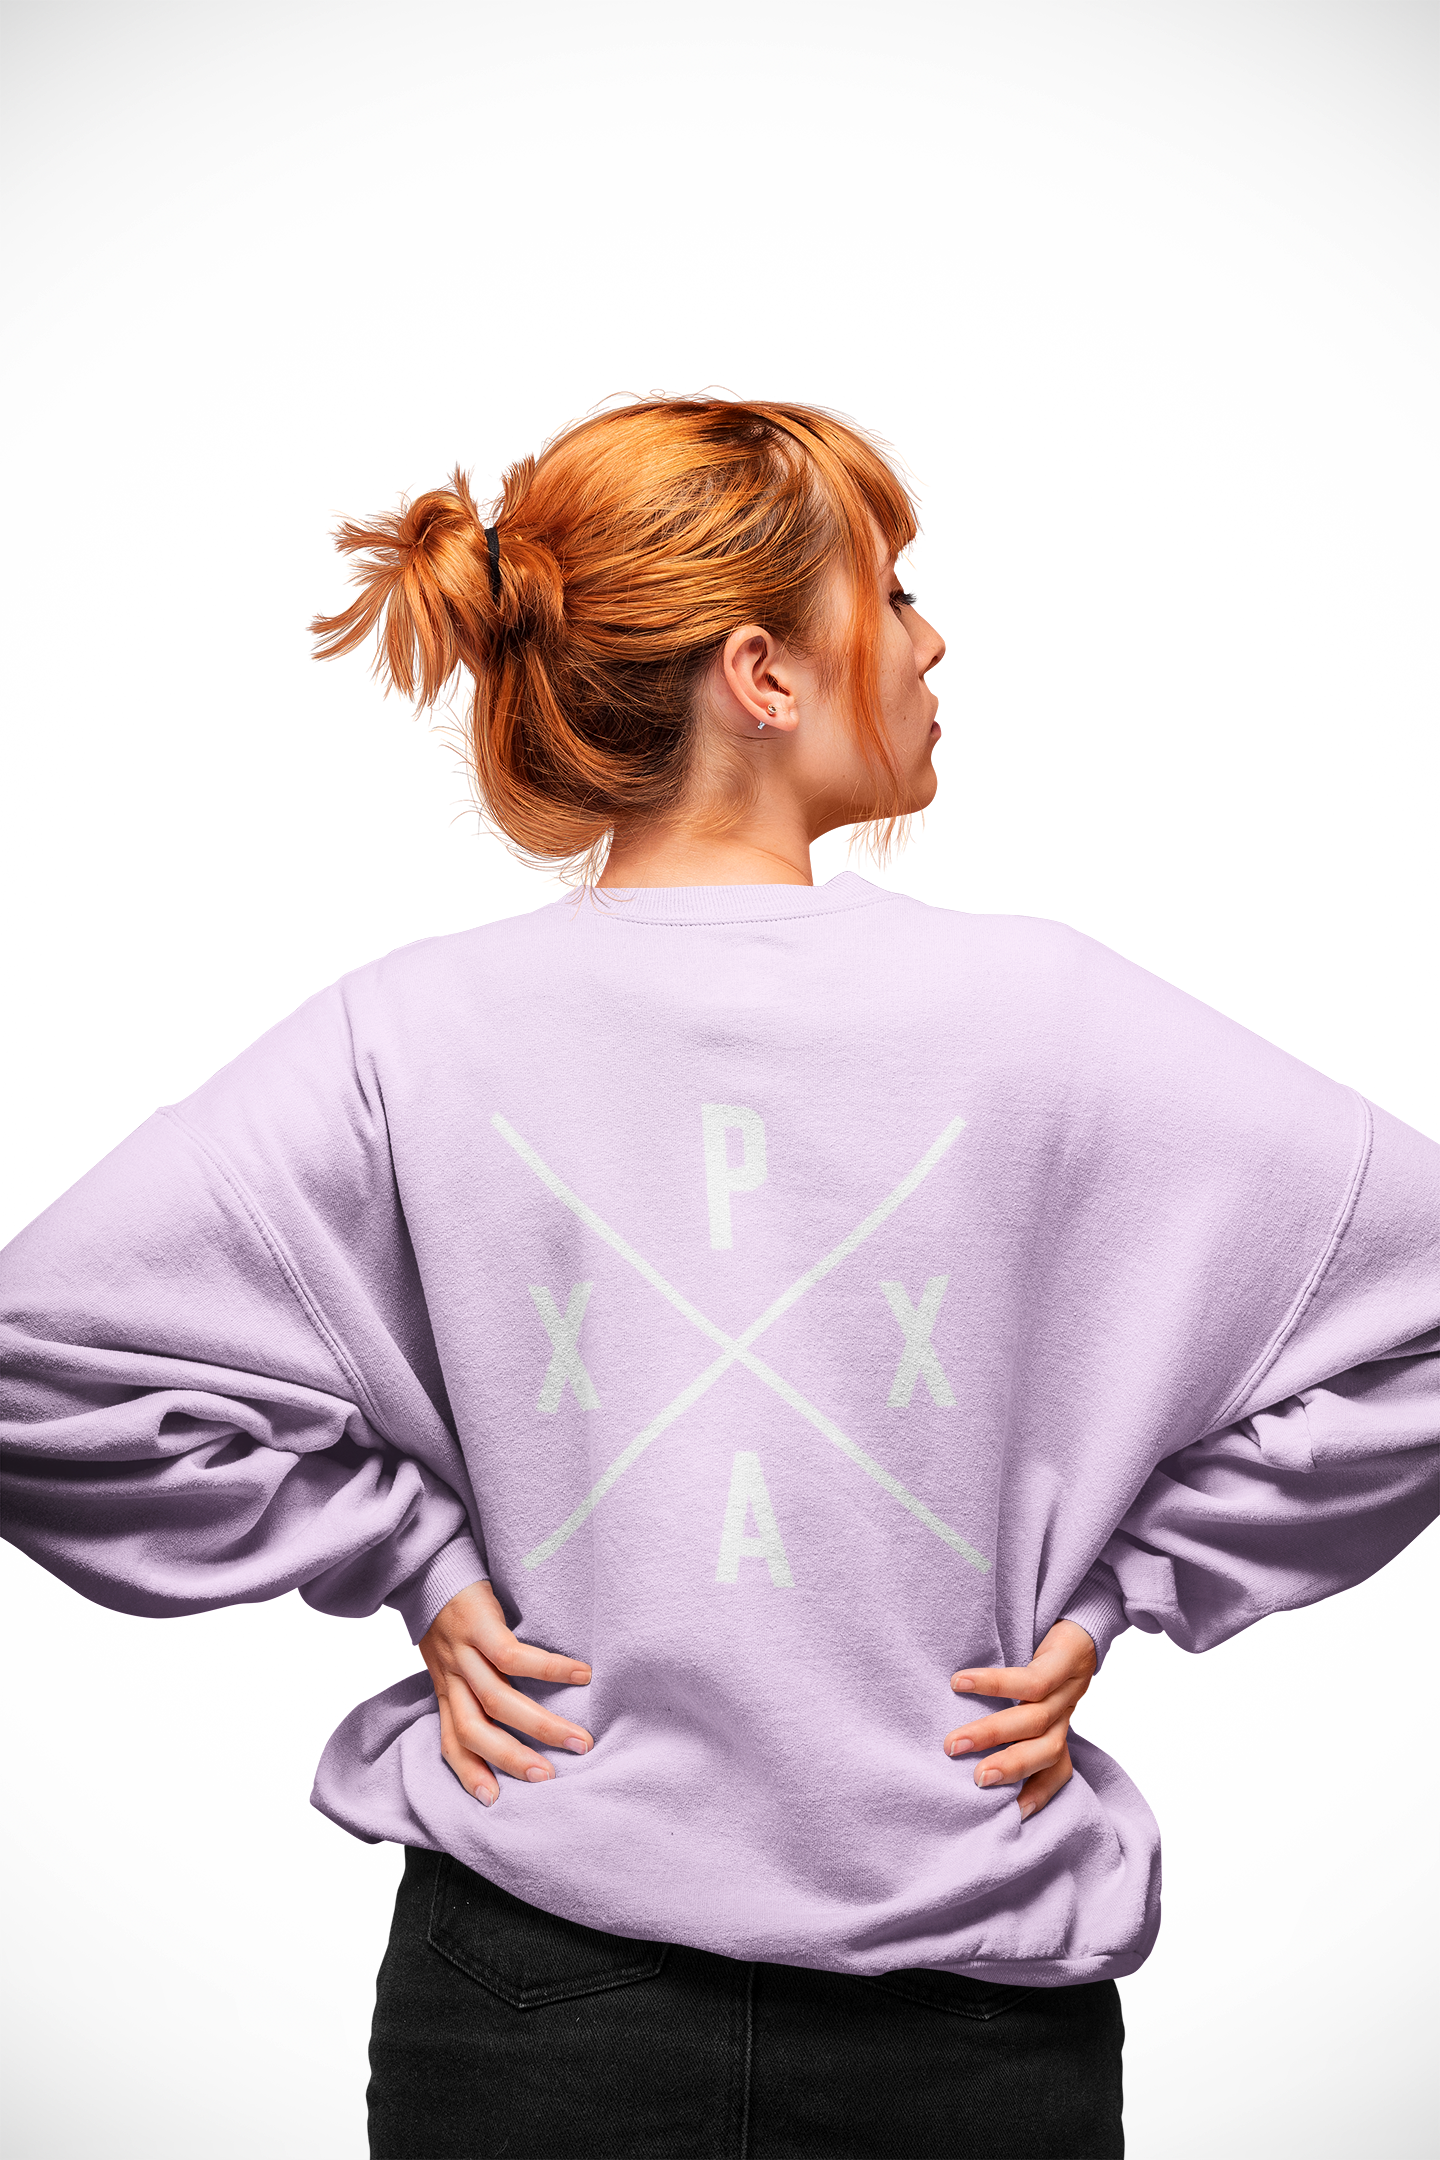 Peter Paxx Sweater - Violet Lilac